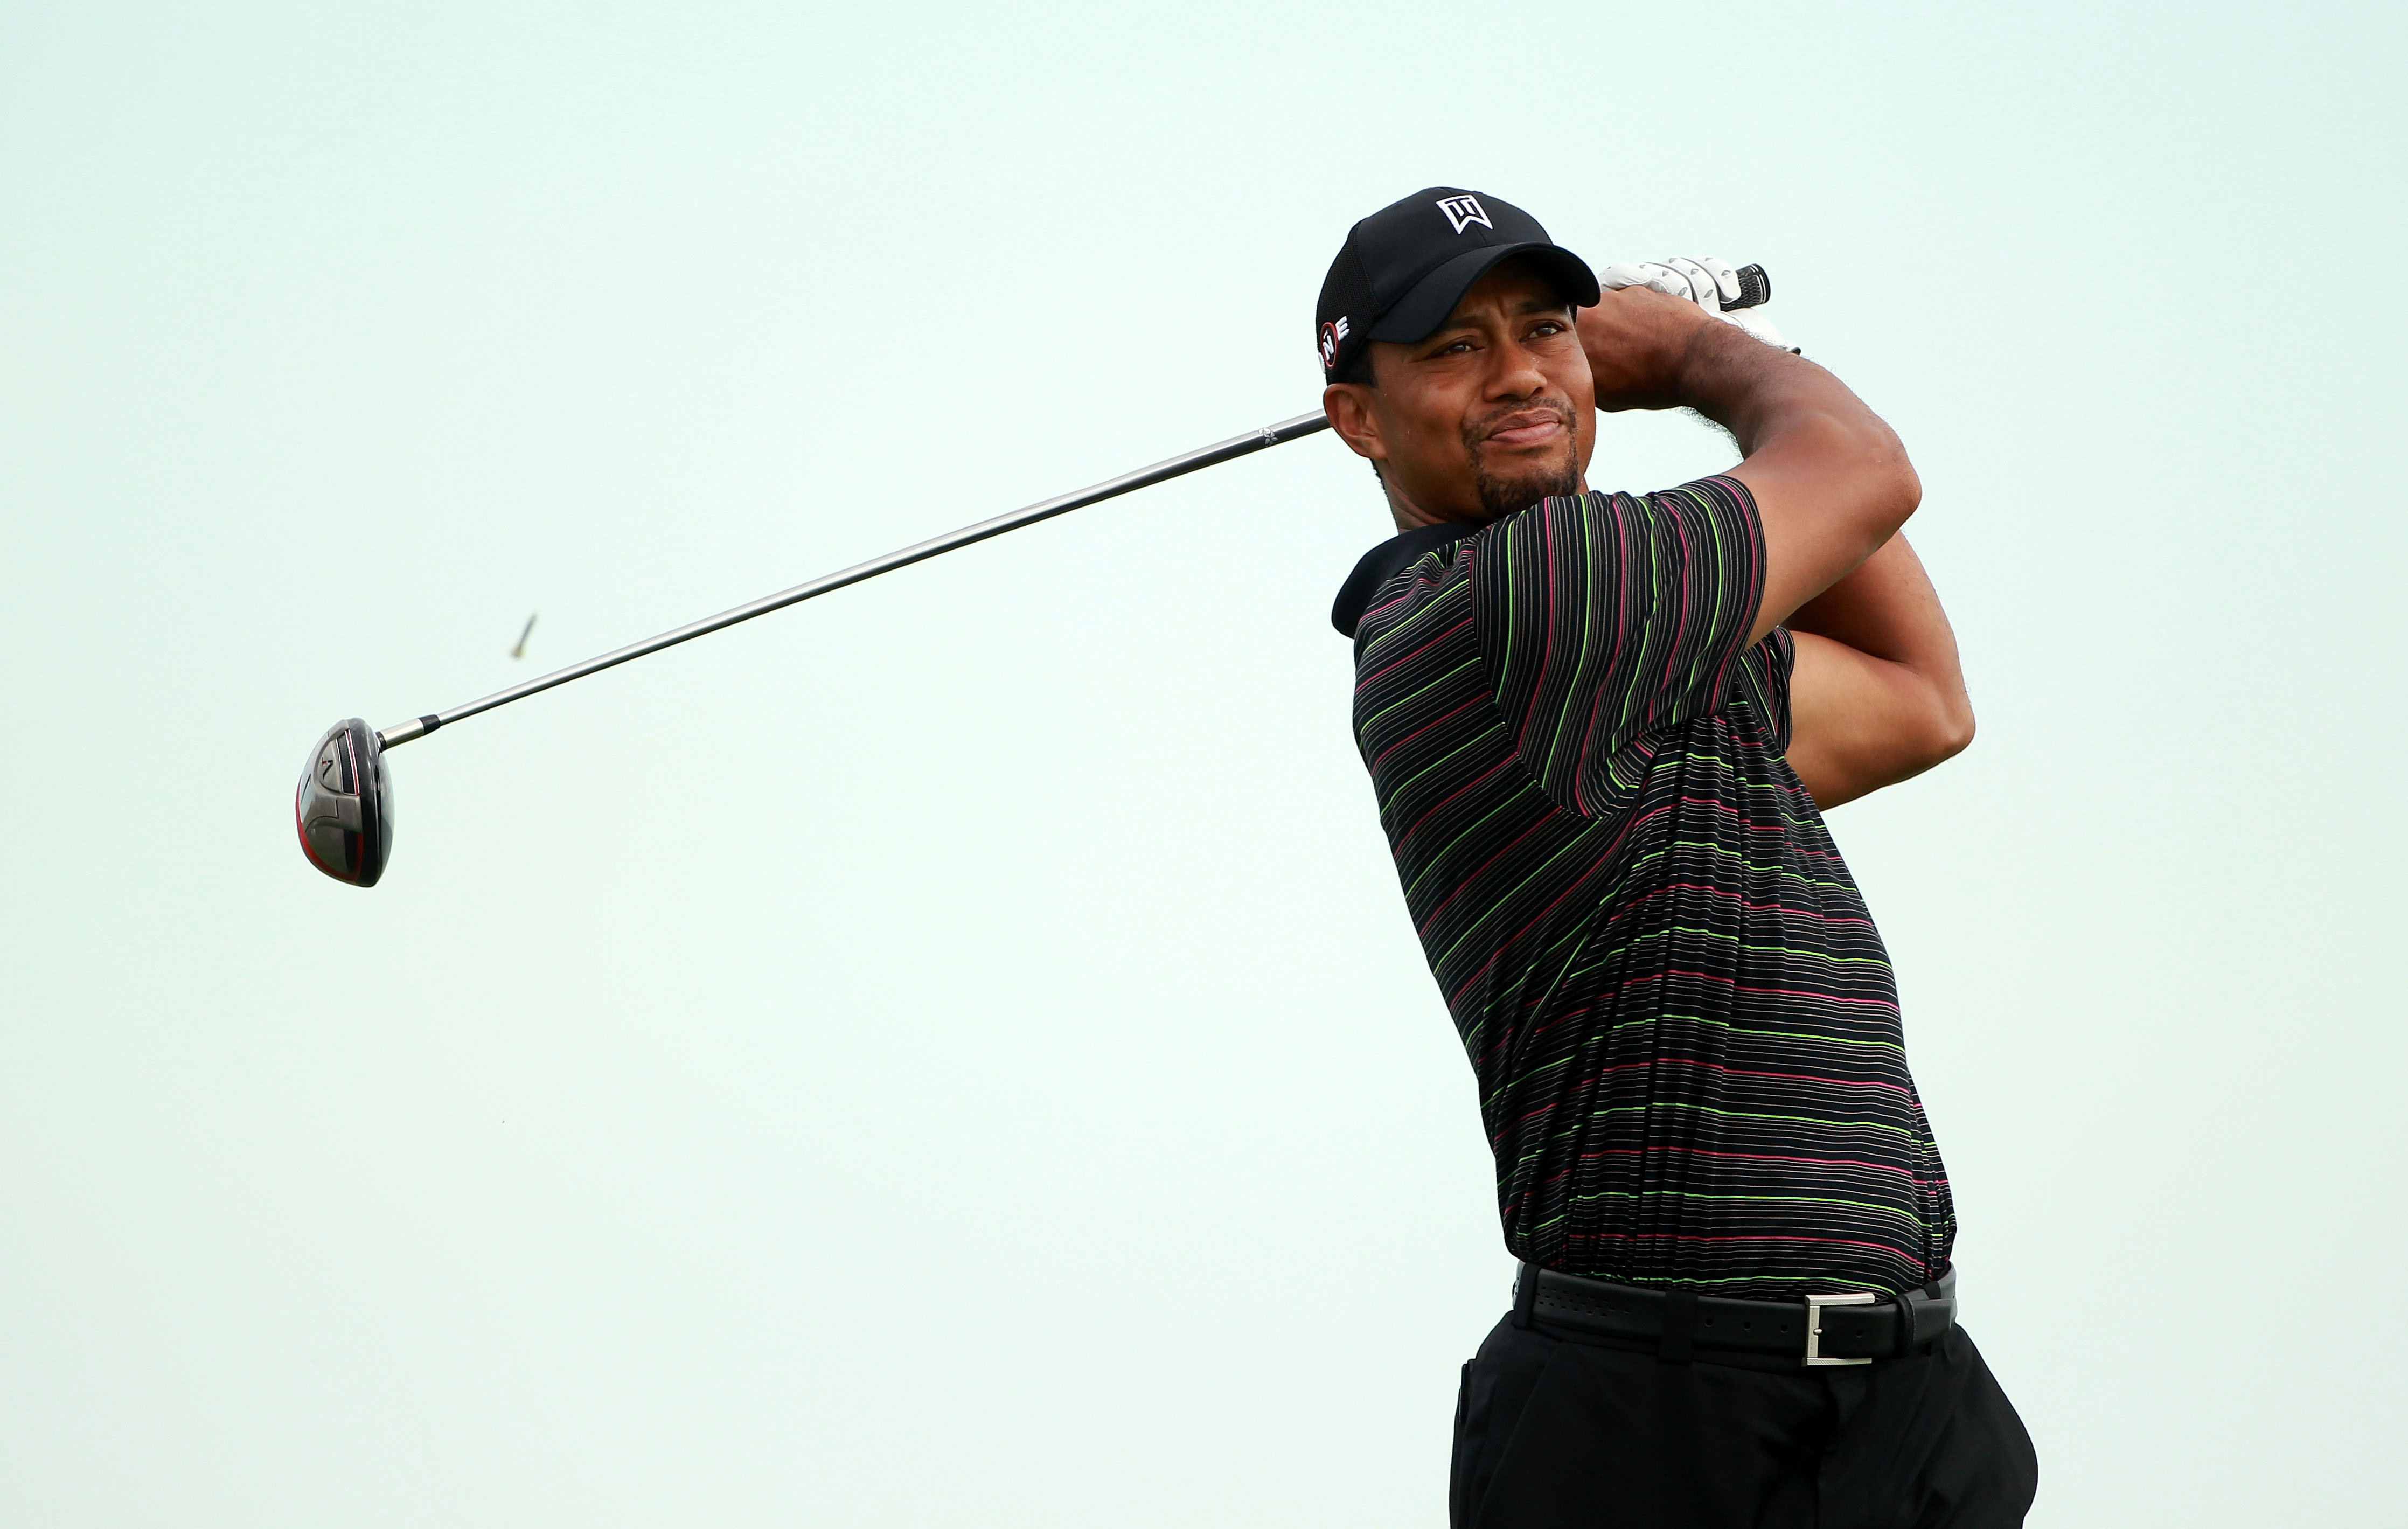 KOHLER, WI - AUGUST 09:  Tiger Woods plays a shot during a practice round prior to the start of the 92nd PGA Championship on the Straits Course at Whistling Straits on August 9, 2010 in Kohler, Wisconsin.  (Photo by Andrew Redington/Getty Images)